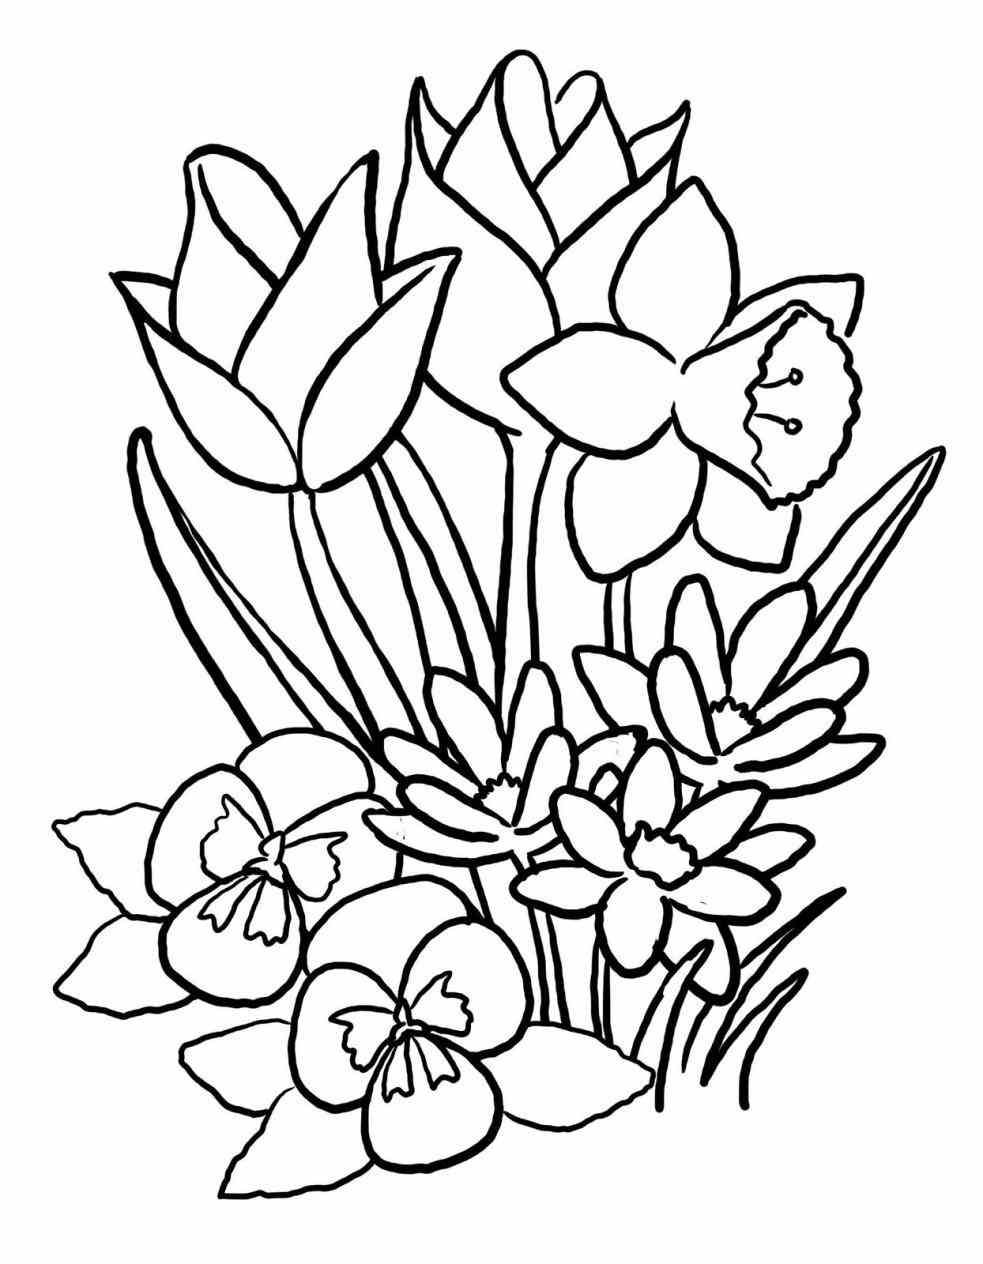 29++ Daisy flower coloring pages ideas